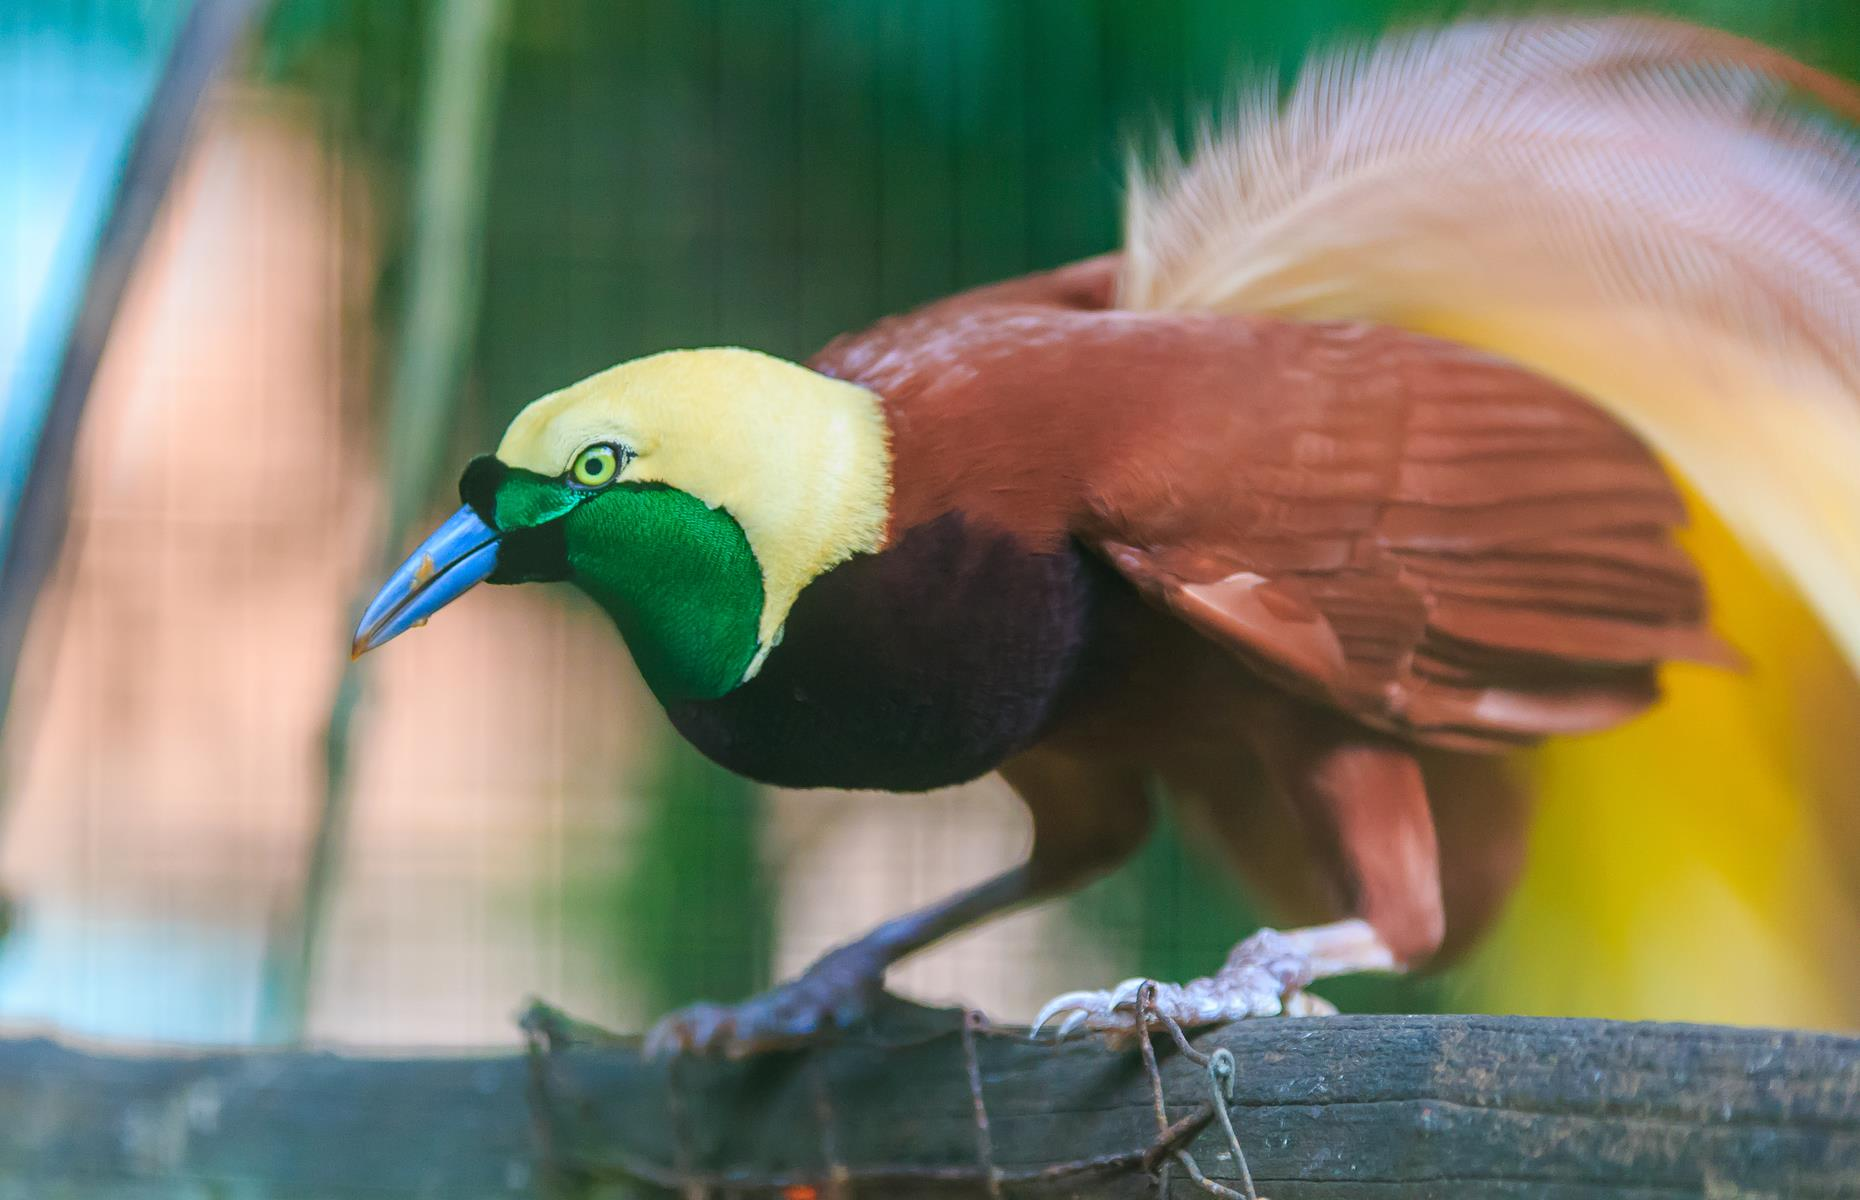 Slide 6 of 26: On top of verdant landscapes, New Guinea is home to an abundance of wildlife. In fact, the islandboasts as many bird and plant species as Australia, despiteoccupying only 1/10th of the land area.Popular residents include the wonderfully flamboyant birds of paradise (pictured) and tree kangaroos – many of which are at threat due to habitat destruction.